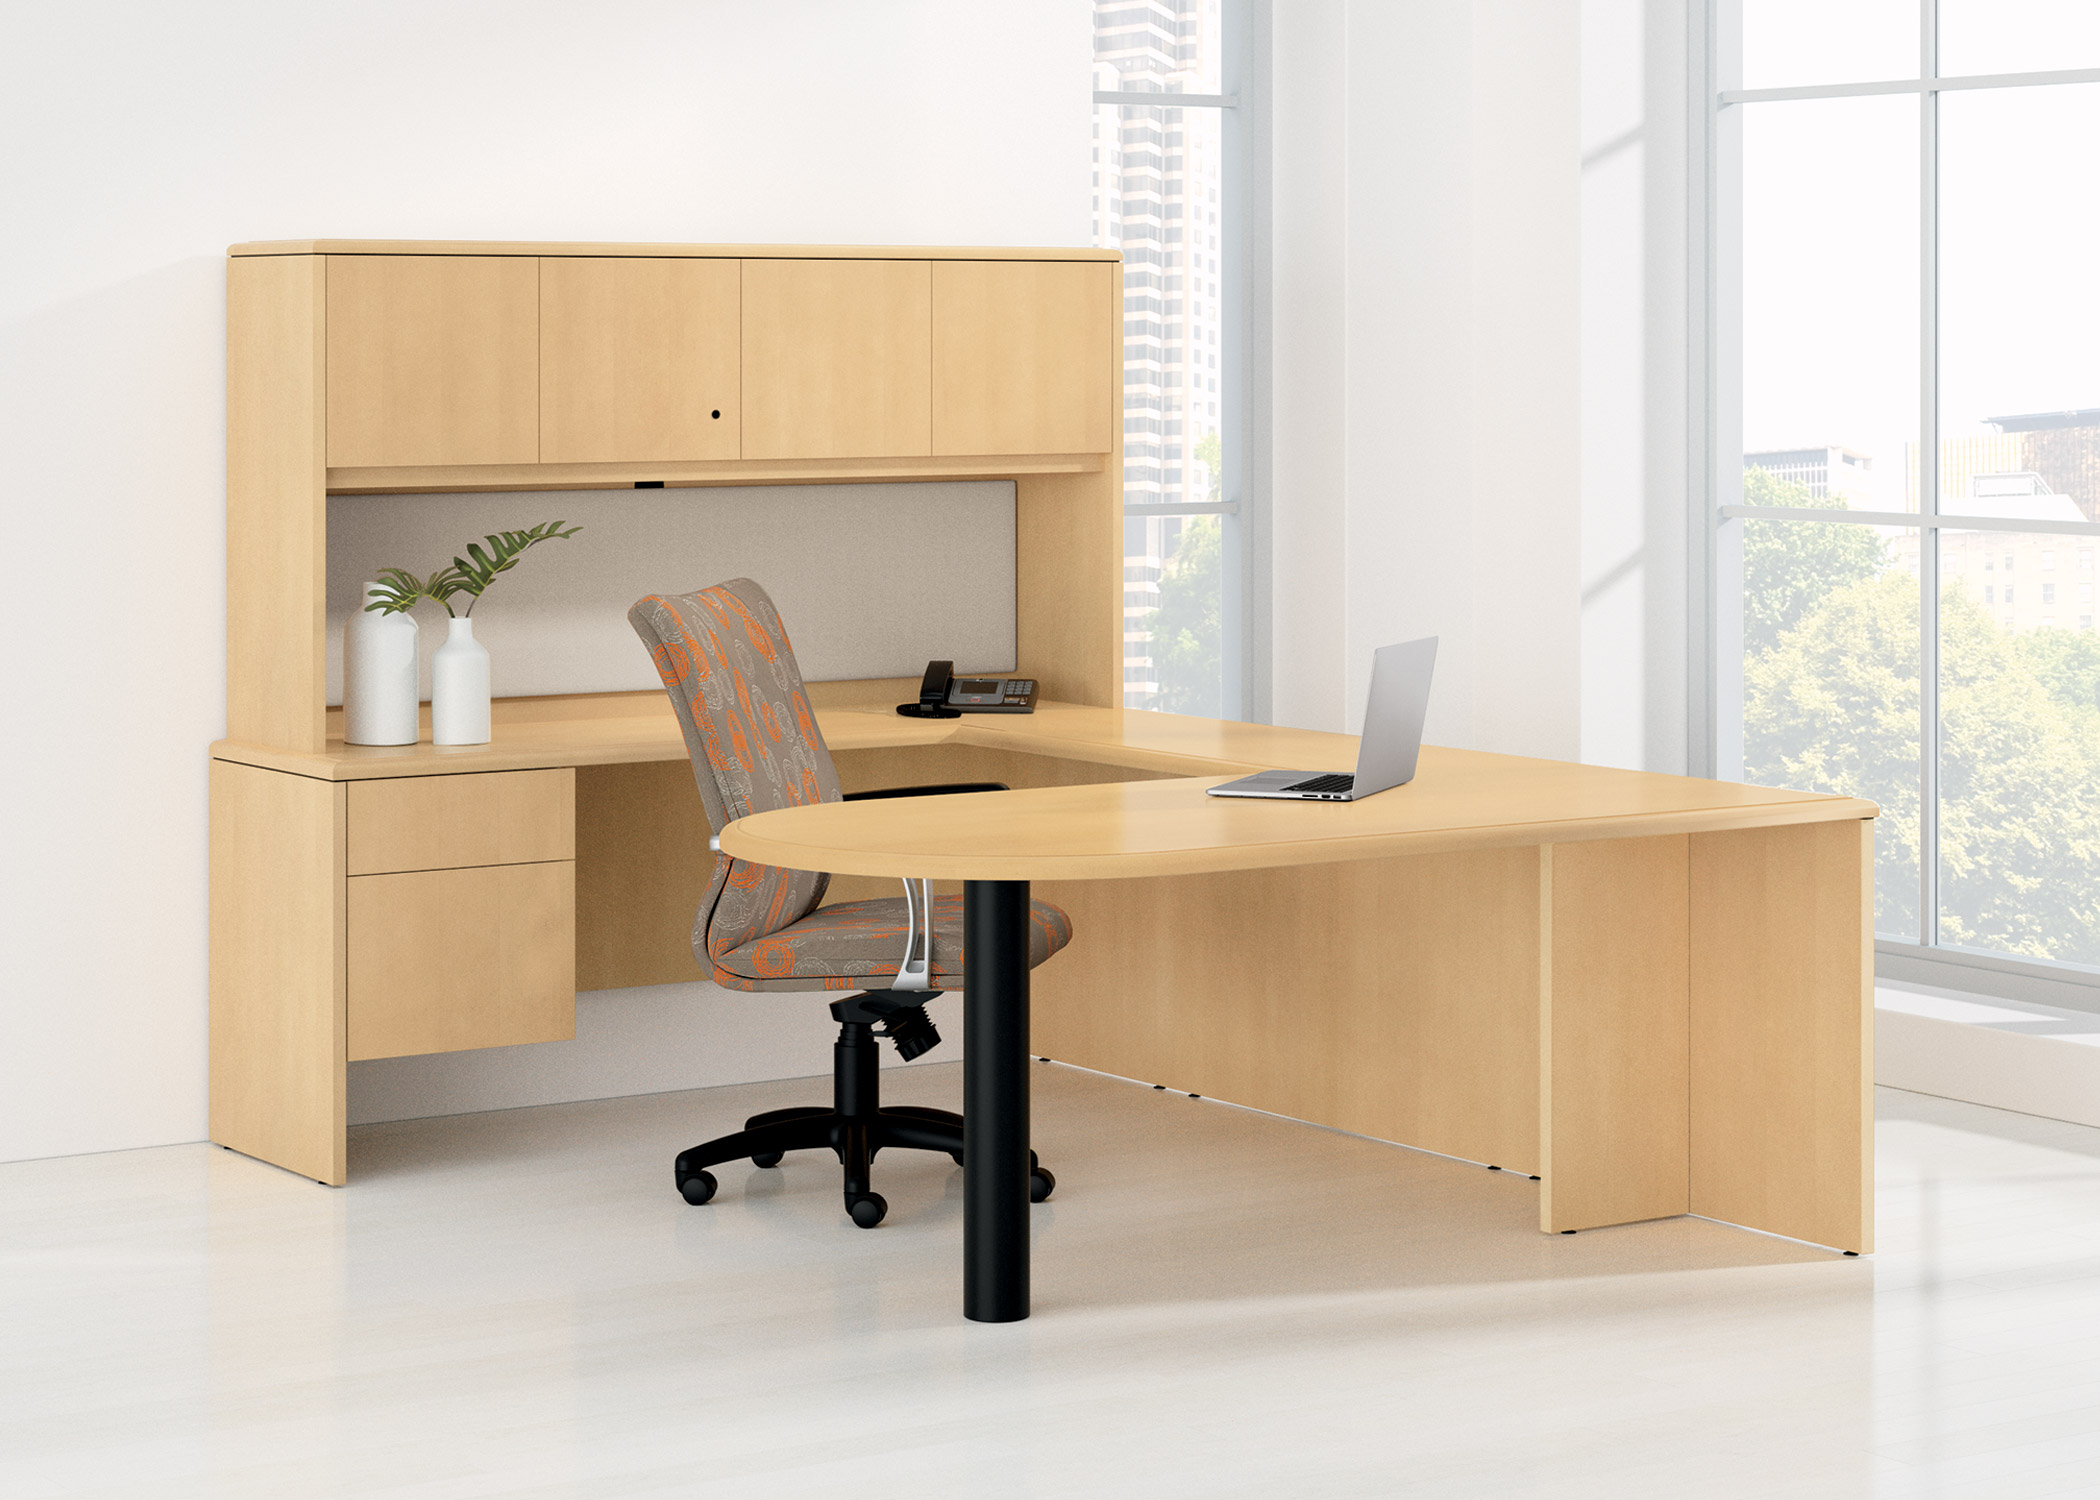 Office Furniture Albuquerque Home Design Ideas And Pictures